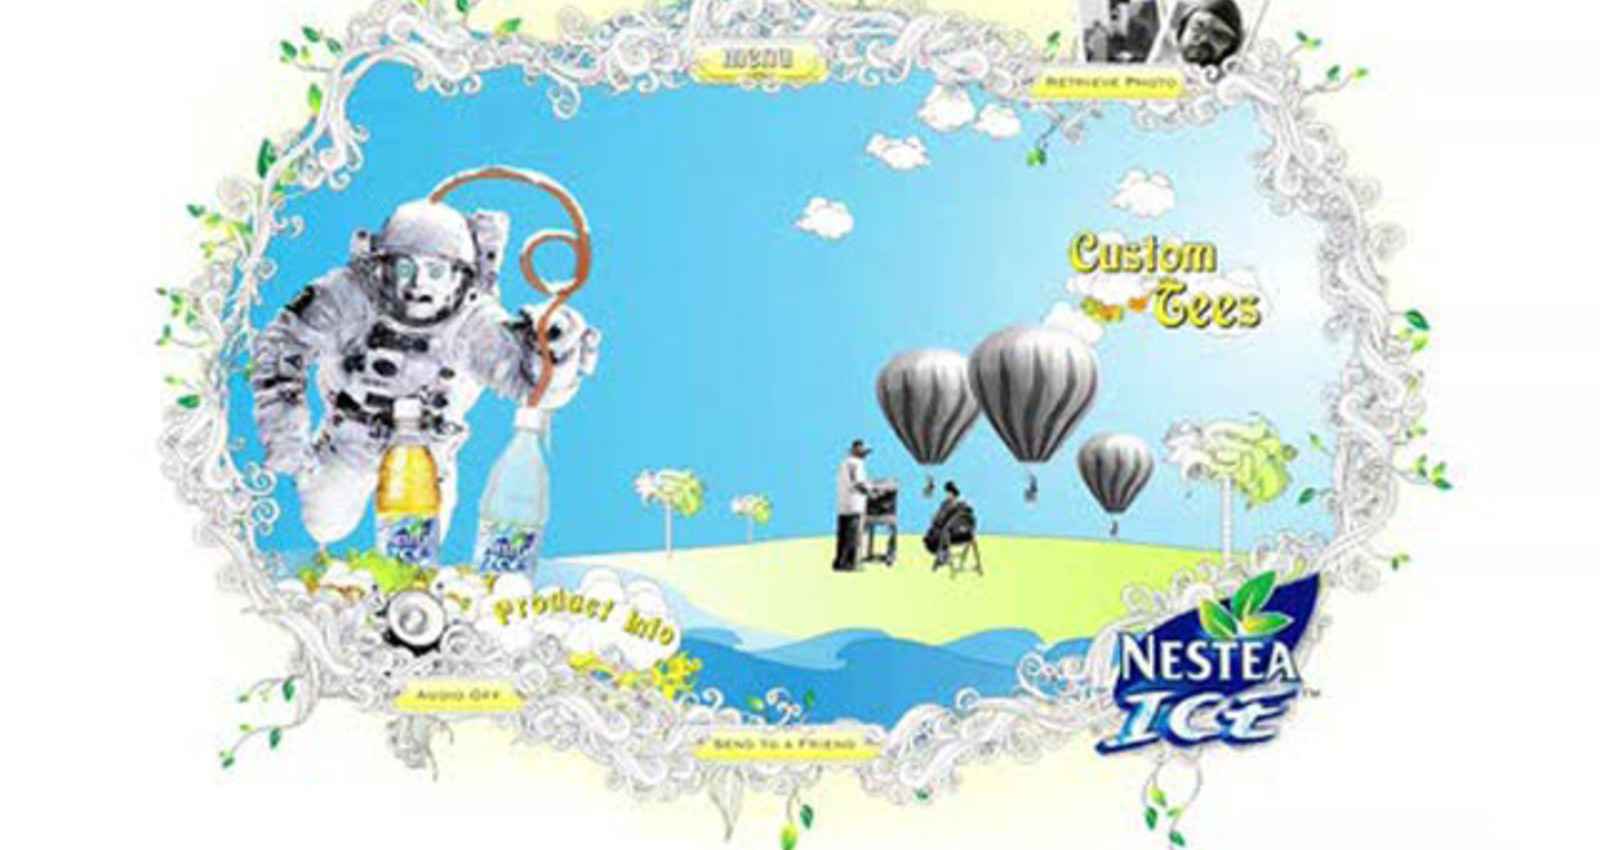 Nestea Ice Website